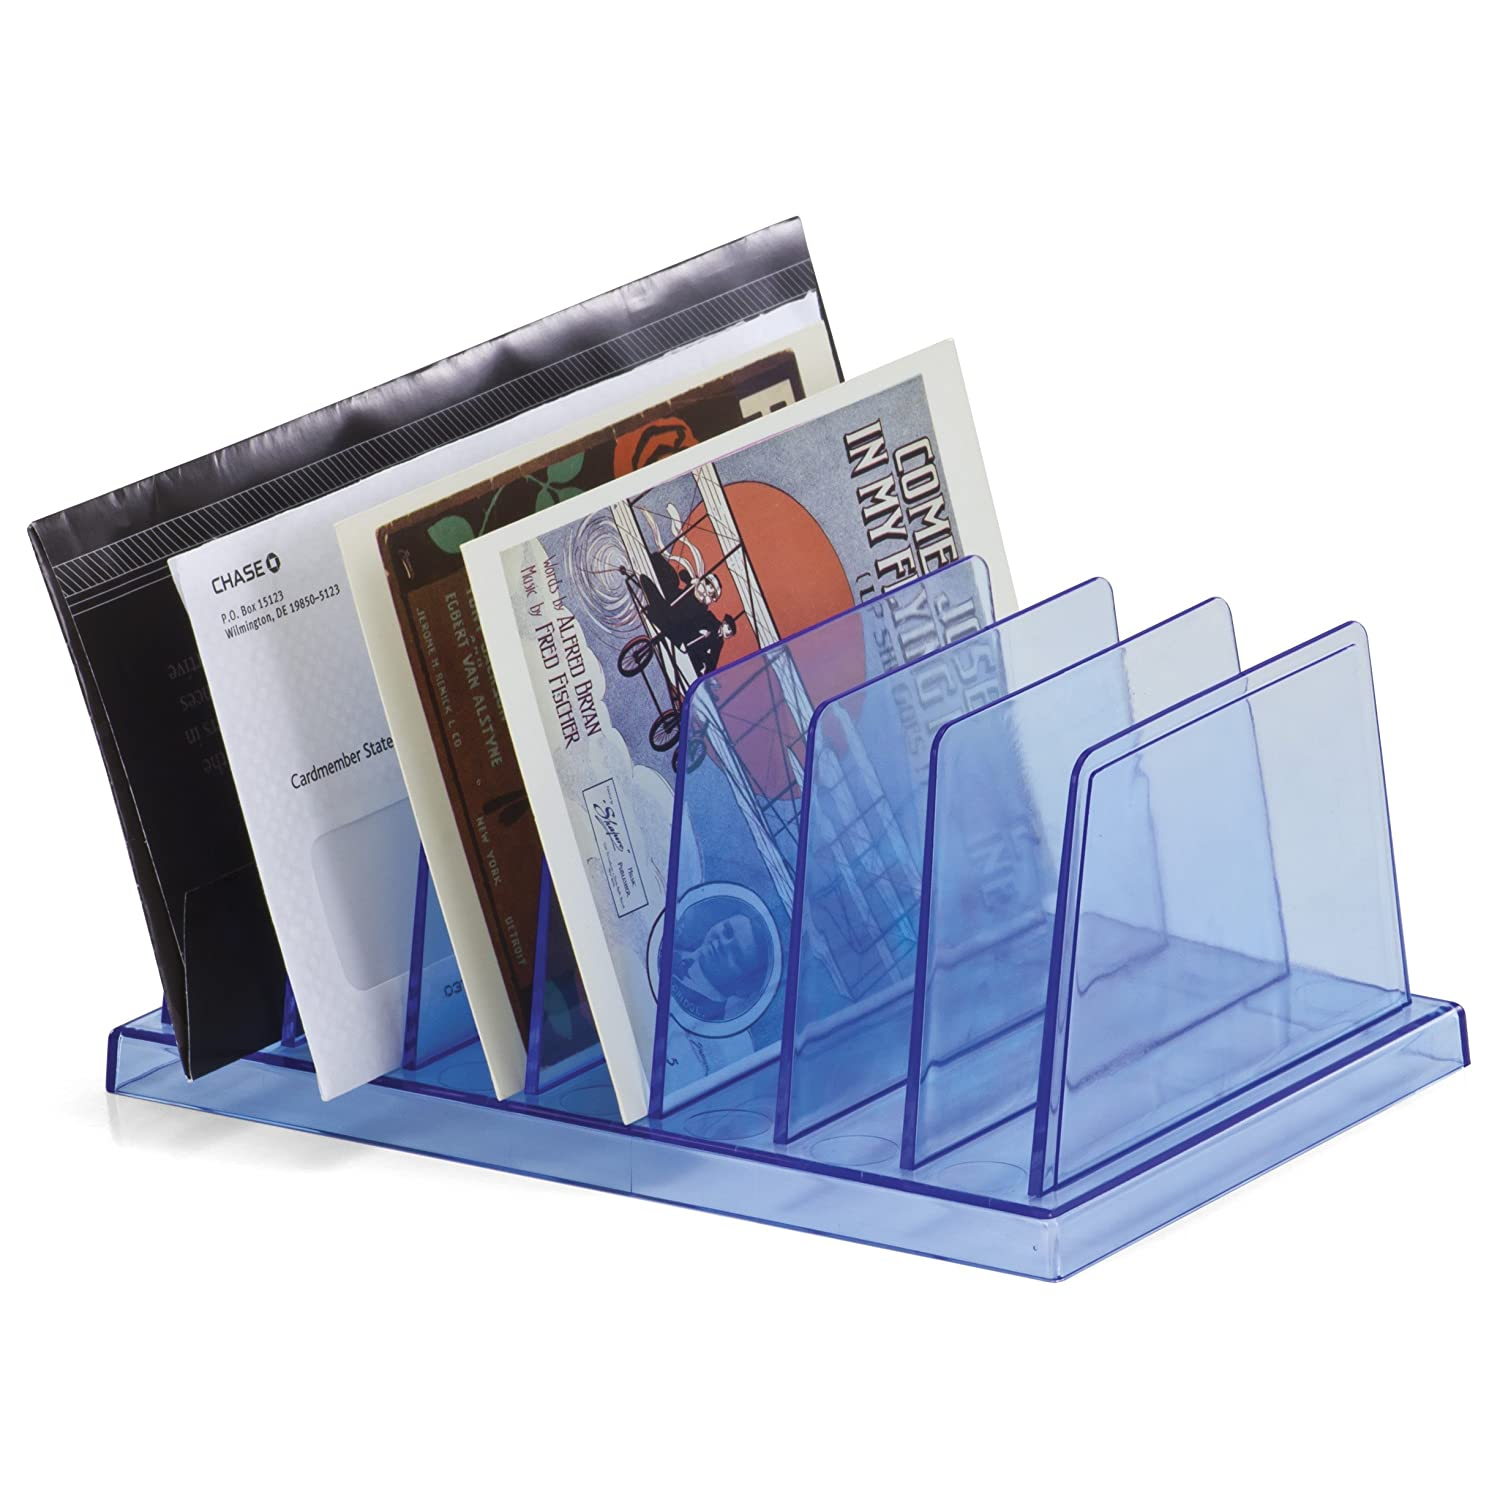 OfficemateOIC Blue Glacier Standard Sorter, 7 Compartments, Transparent Blue (23214)